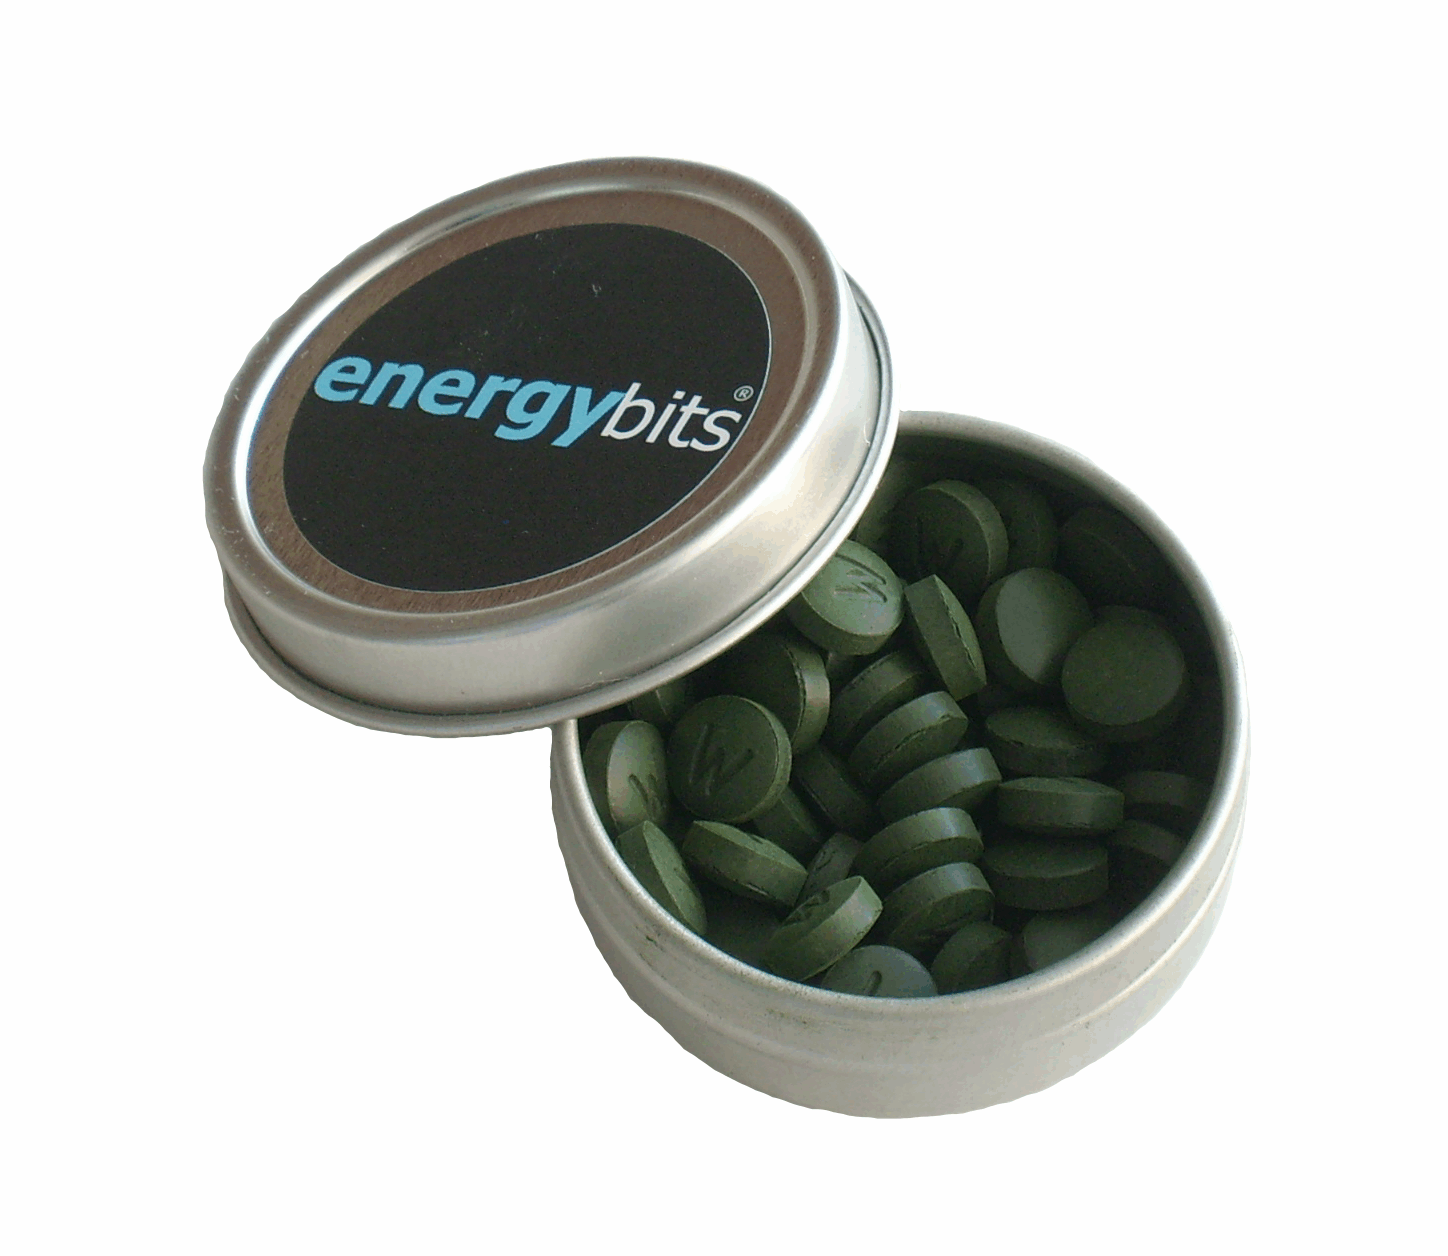 ENERGYbits prize packs will be sent to some of the top teams in Xplore Boston in the week following the race!